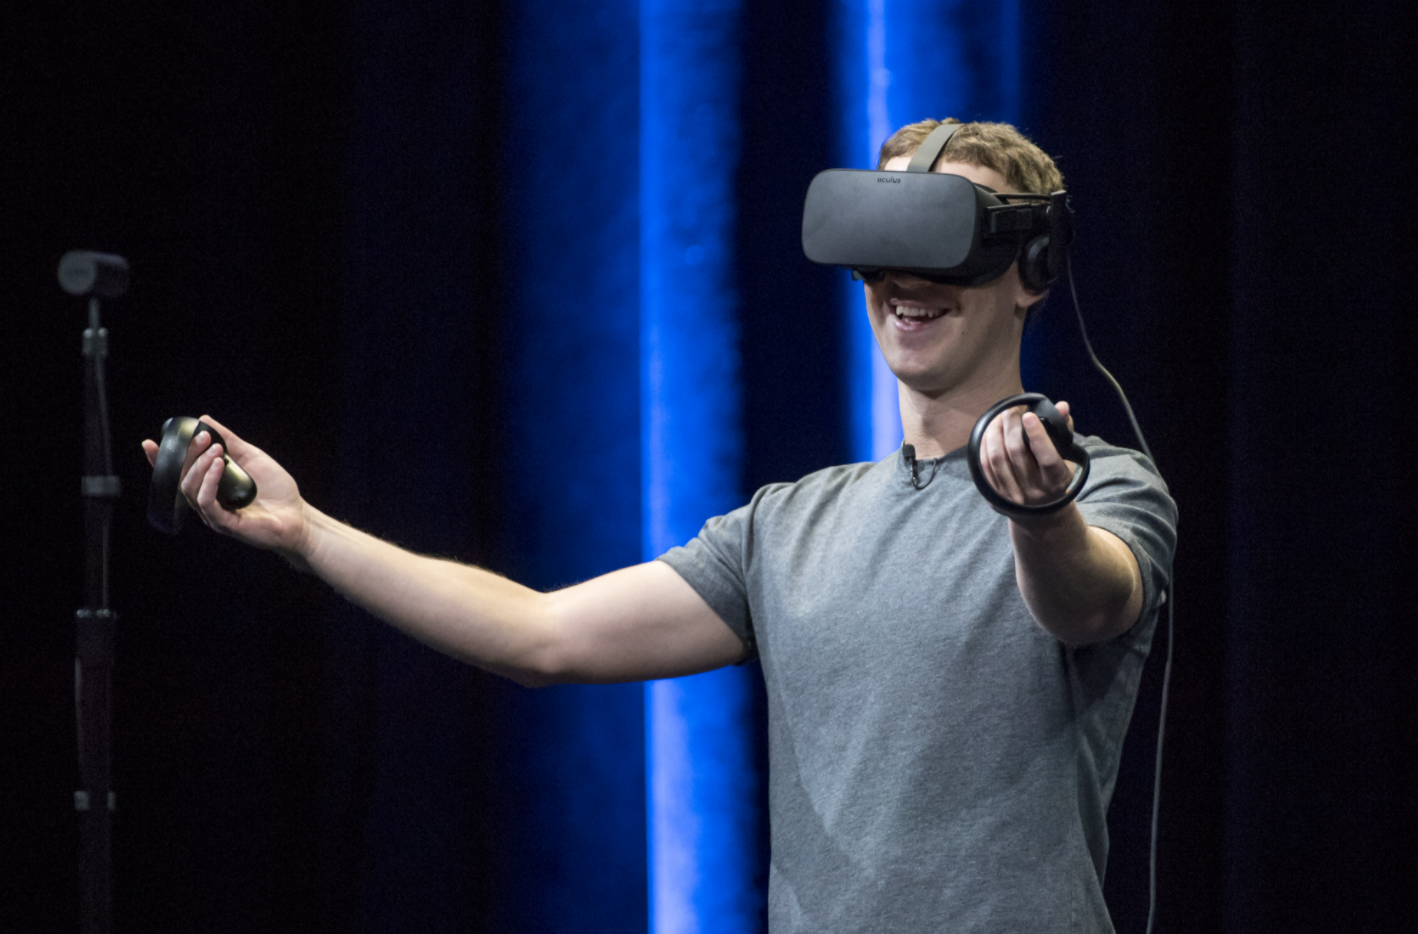 All Oculus Headsets To Require Facebook Logins